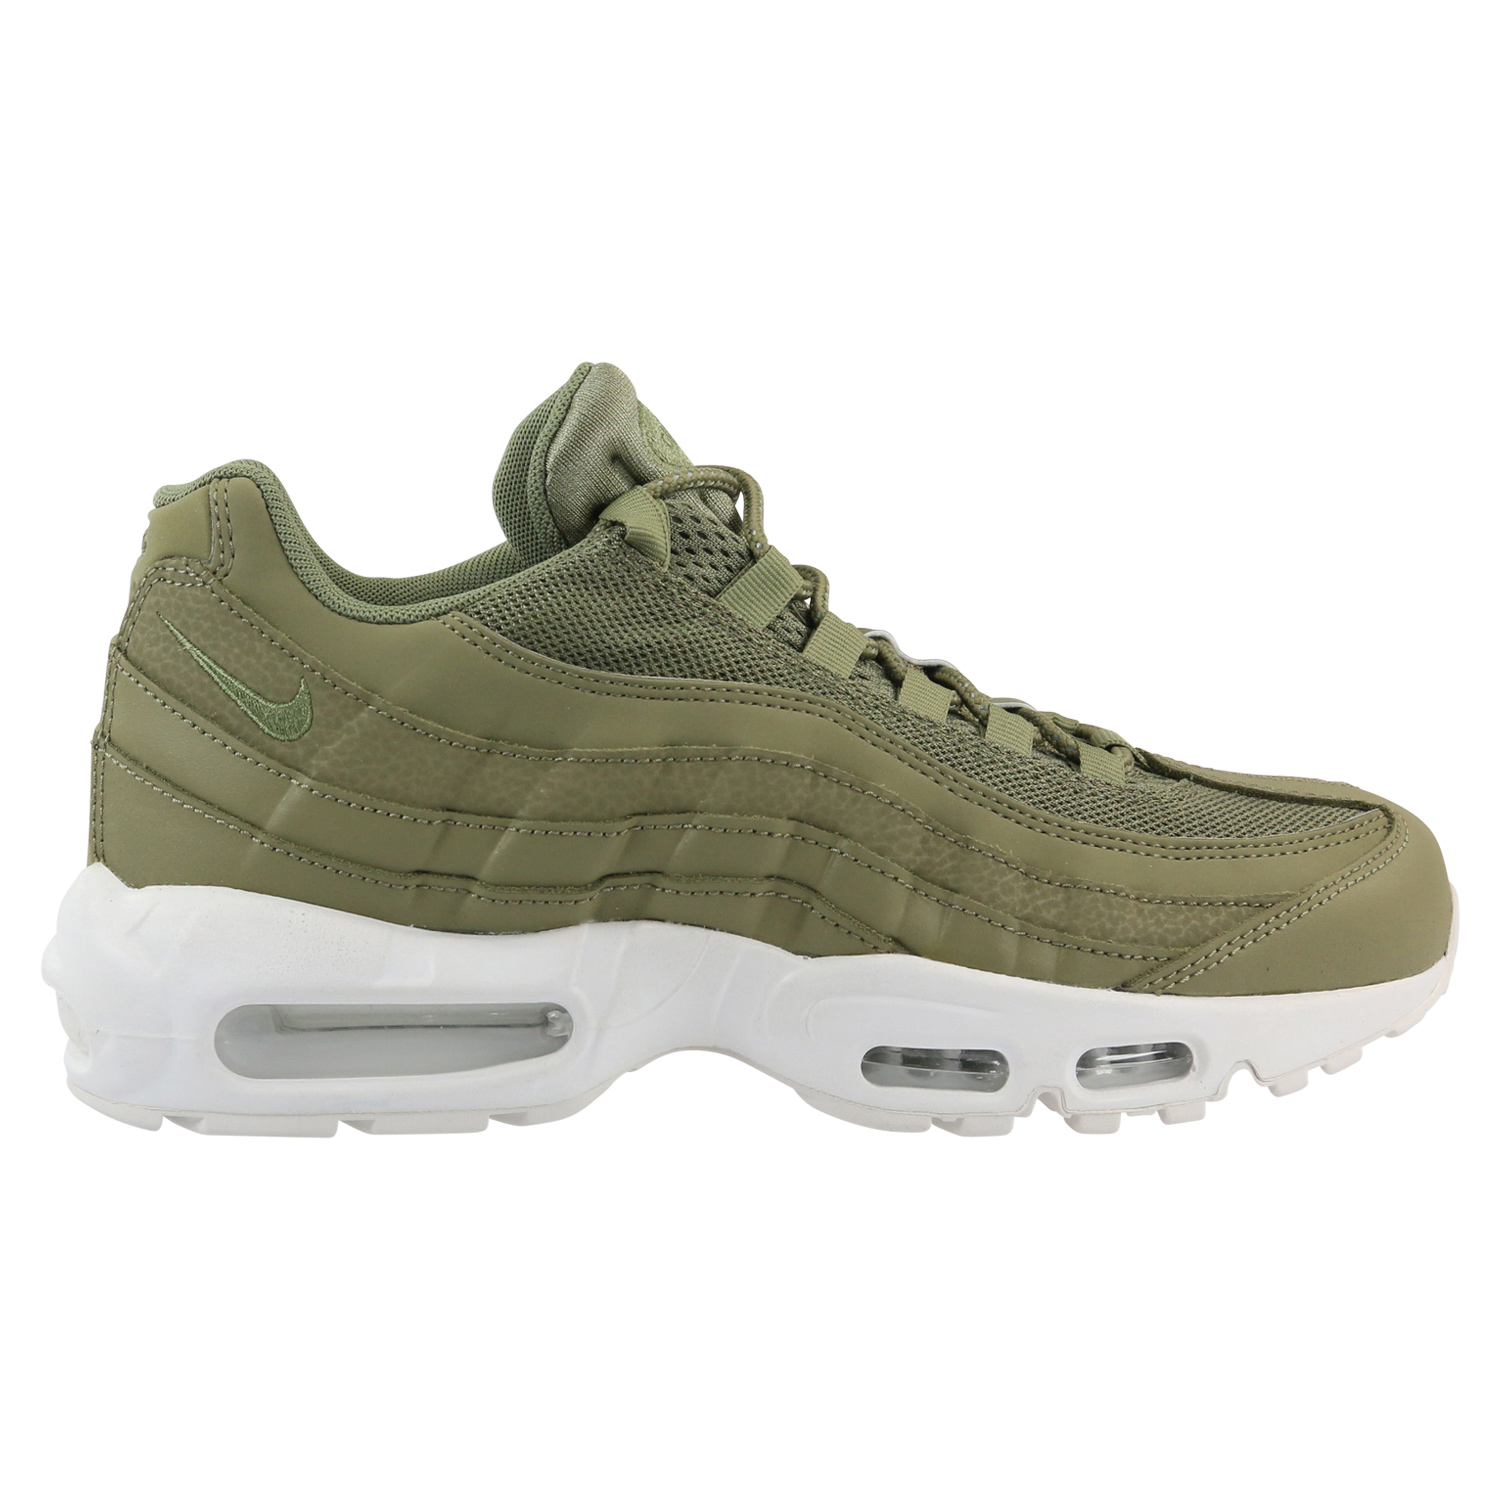 nike air max 95 ultra essential schuhe sneaker herren 857910 ebay. Black Bedroom Furniture Sets. Home Design Ideas